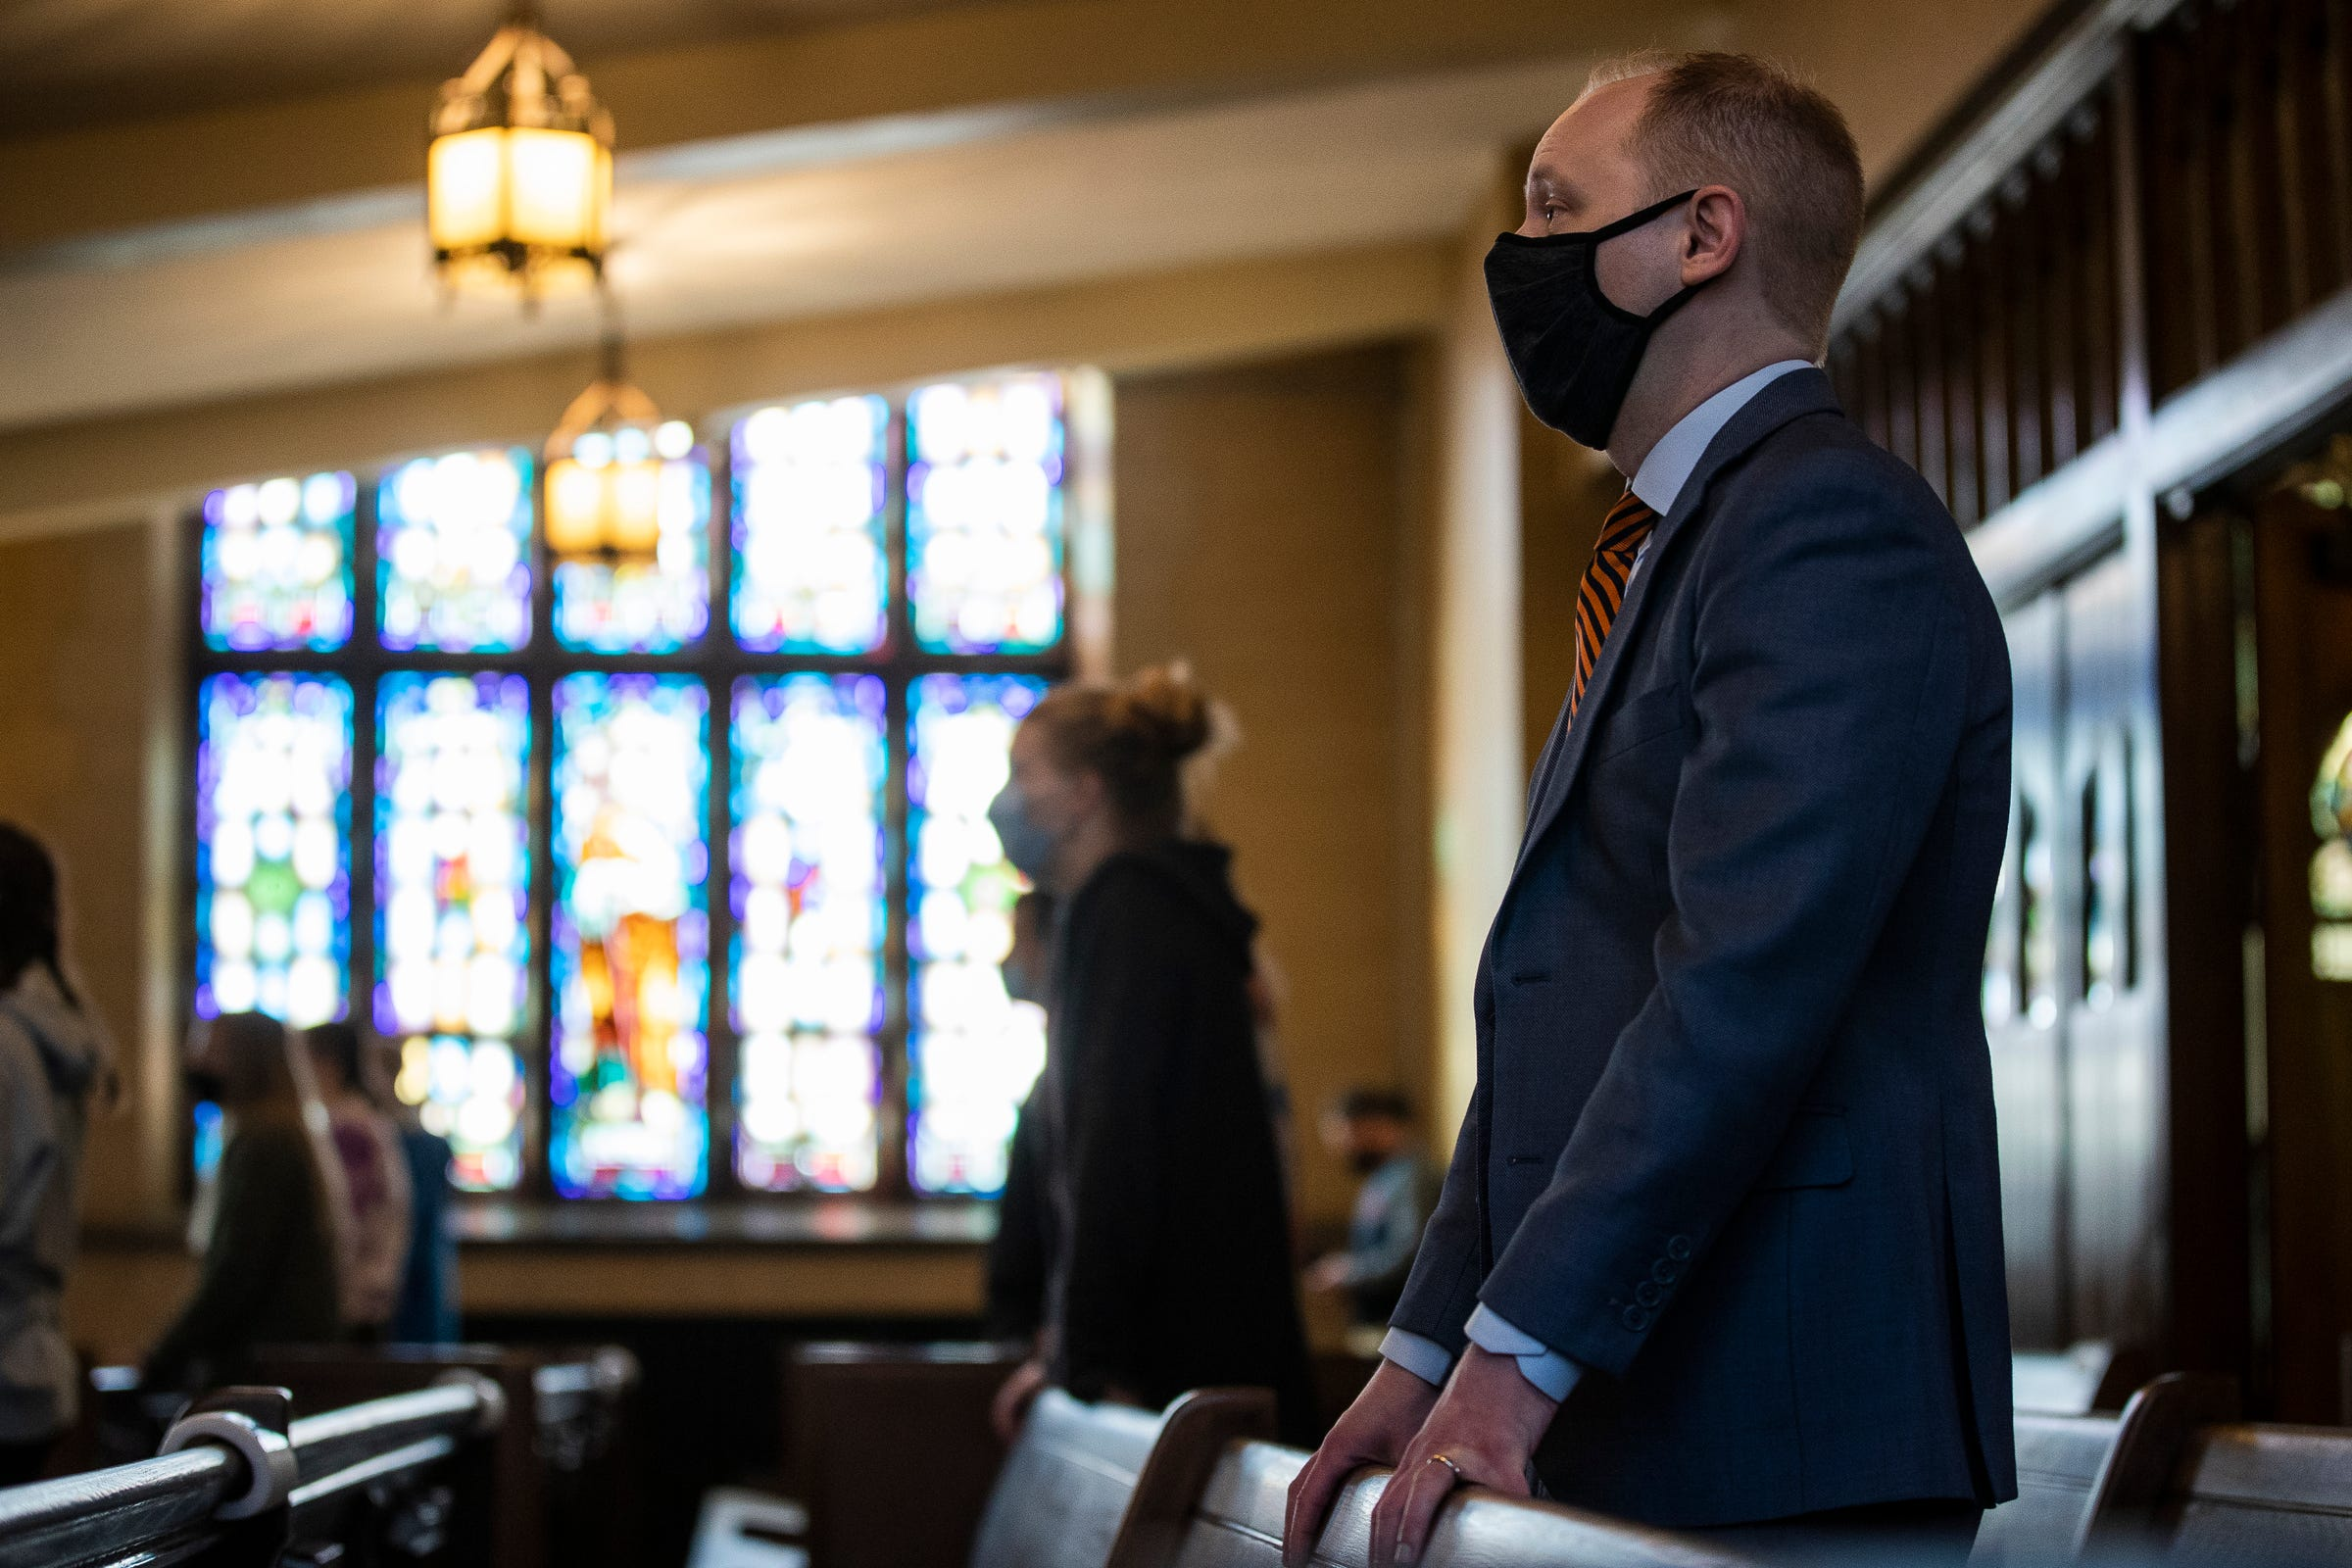 Hope College president Matthew Scogin attends a worship service at the Dimnent Memorial Chapel on campus in Holland, Wednesday, March 31, 2021.